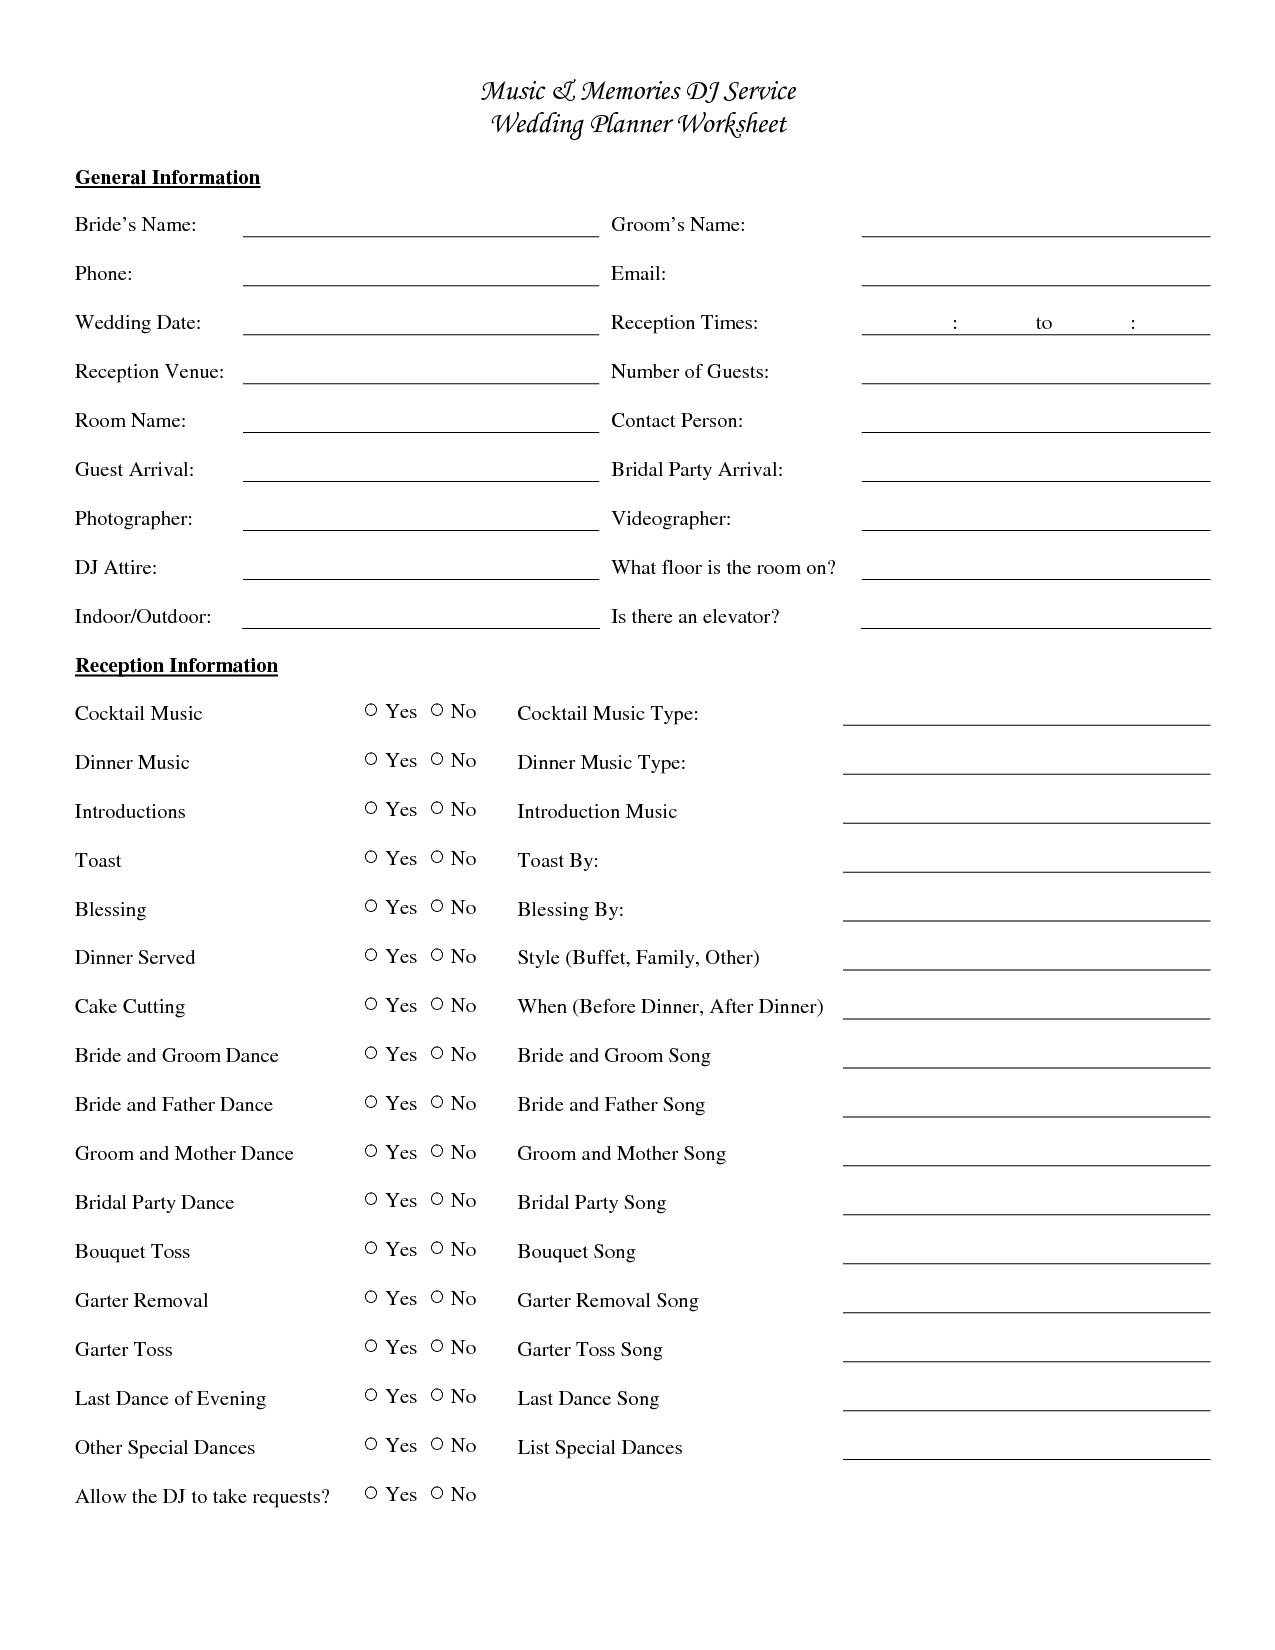 20 Best Images Of Simple Wedding Planning Worksheets